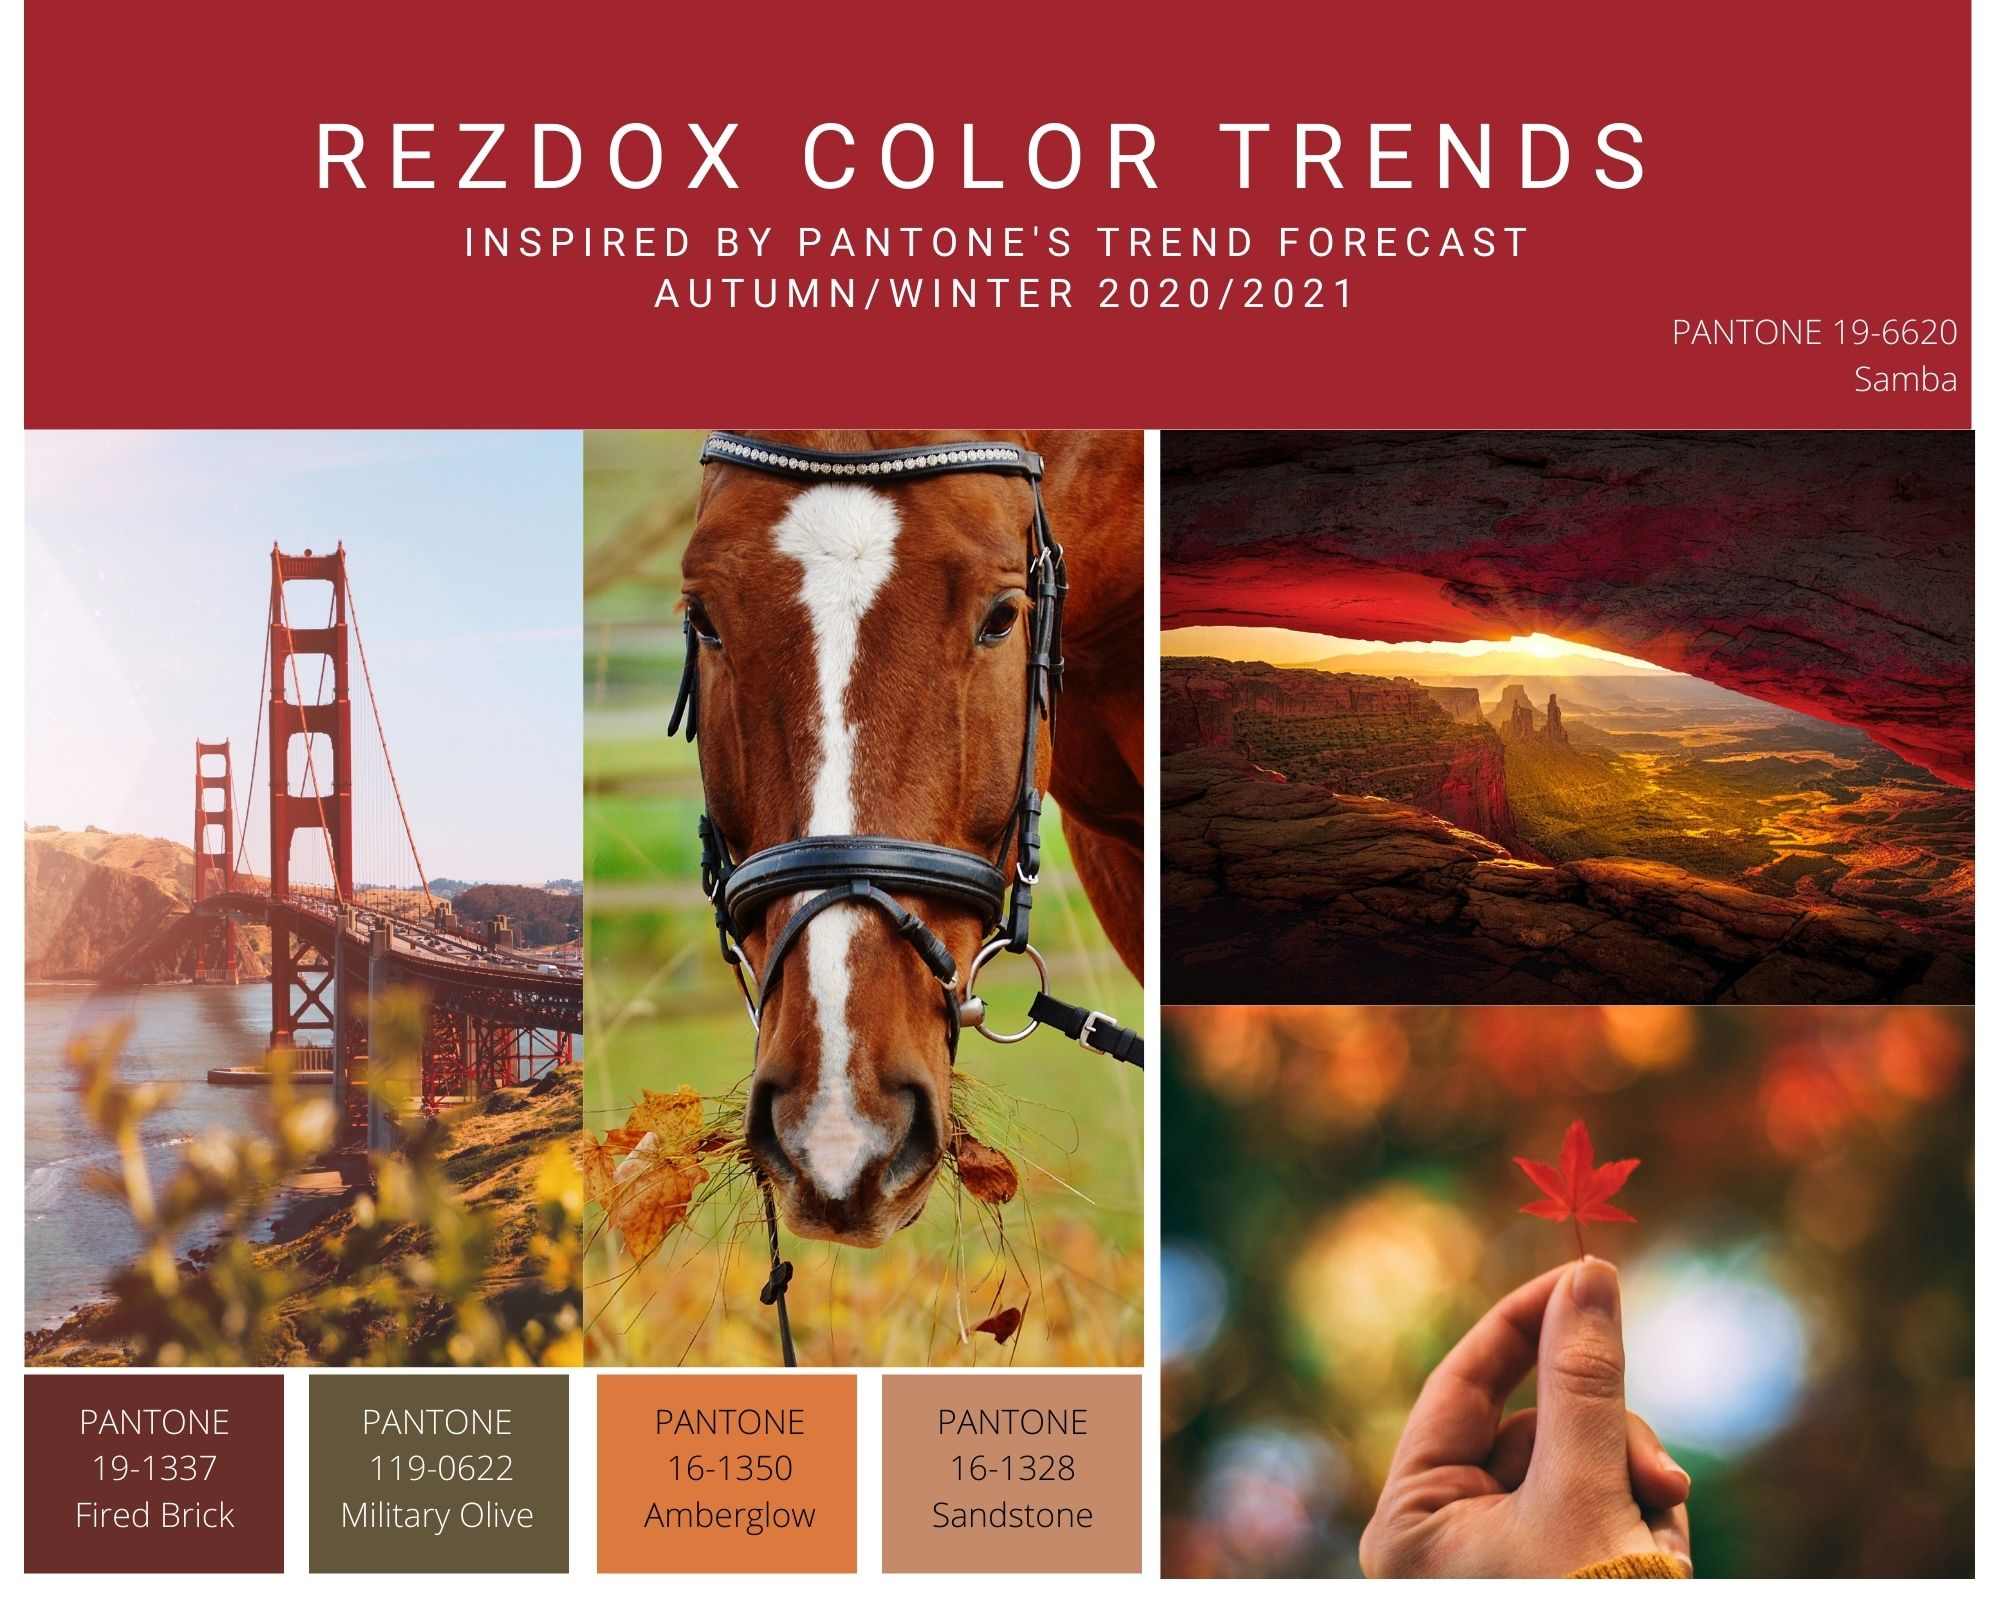 FallColorTrends2020Red.jpg